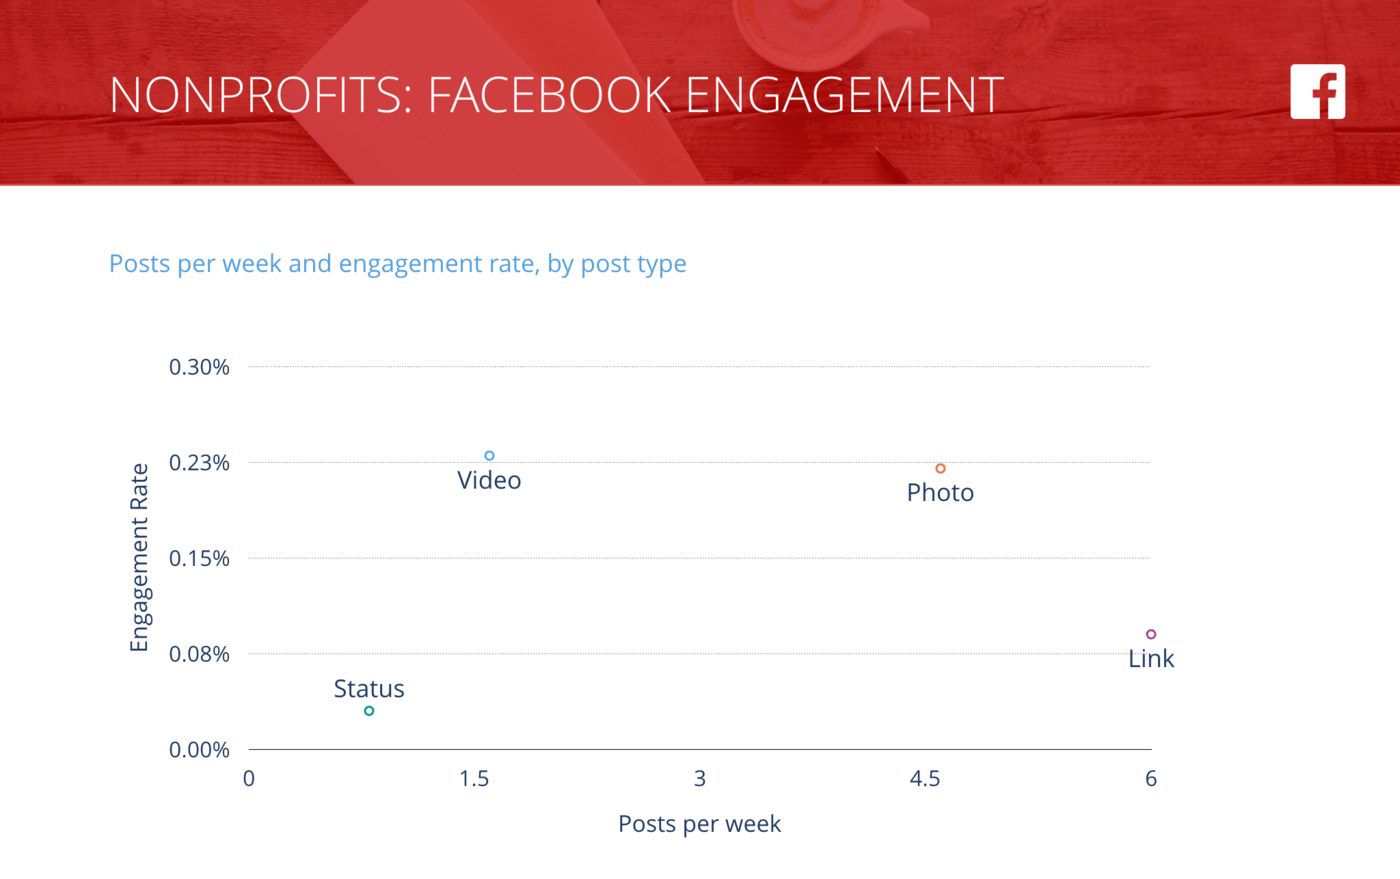 slide of Facebook Posts per Week vs. Engagement Rate per Post, Nonprofit Organizations